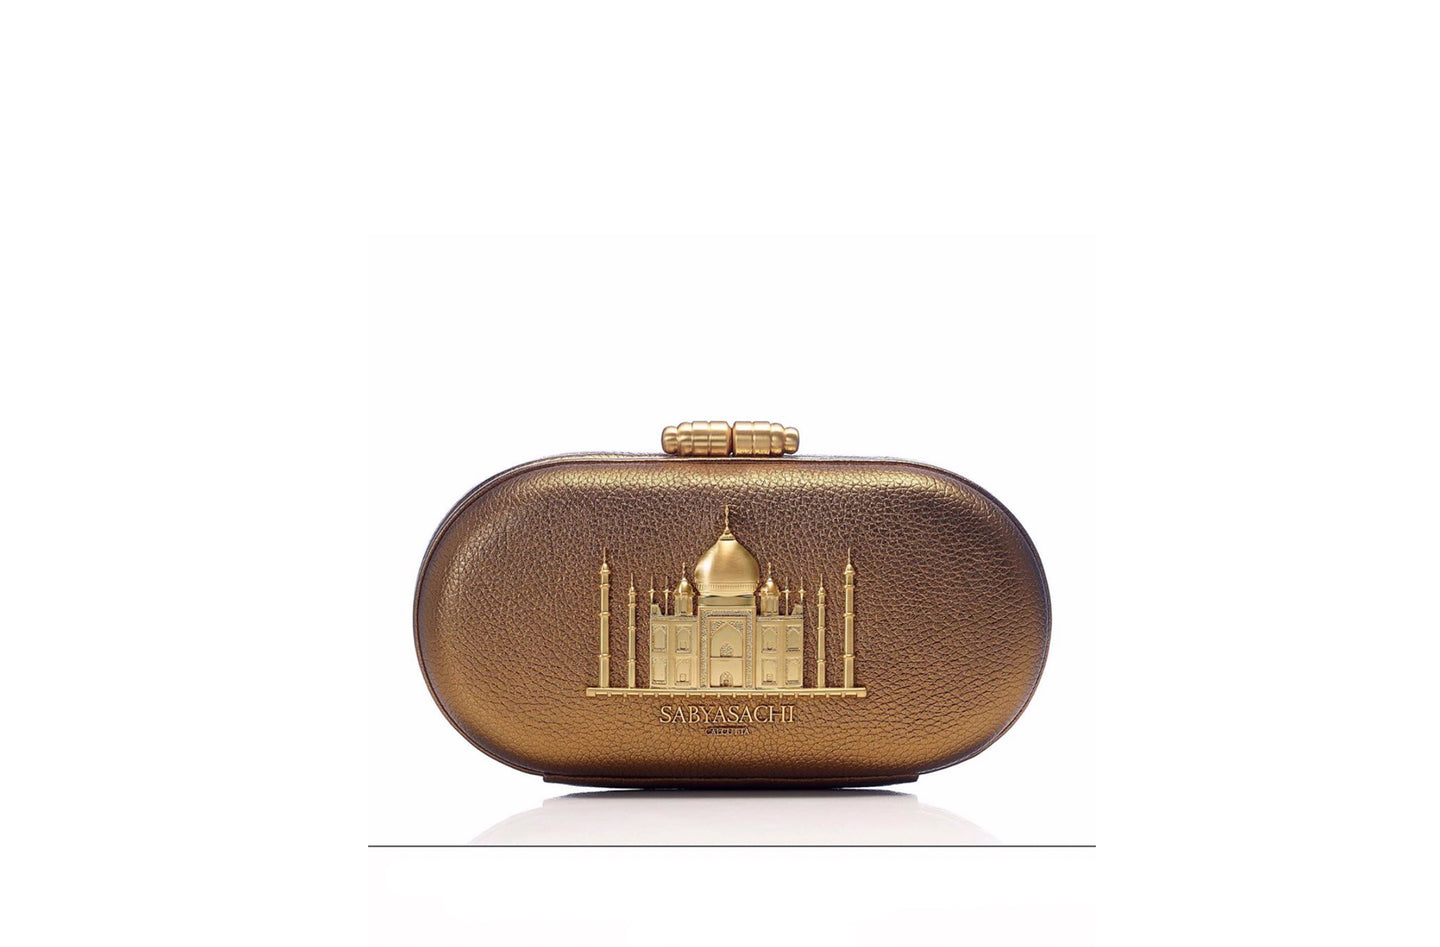 Sabyasachi Taj Minaudiere in Sahara Gold Clutch - The Grand Trunk